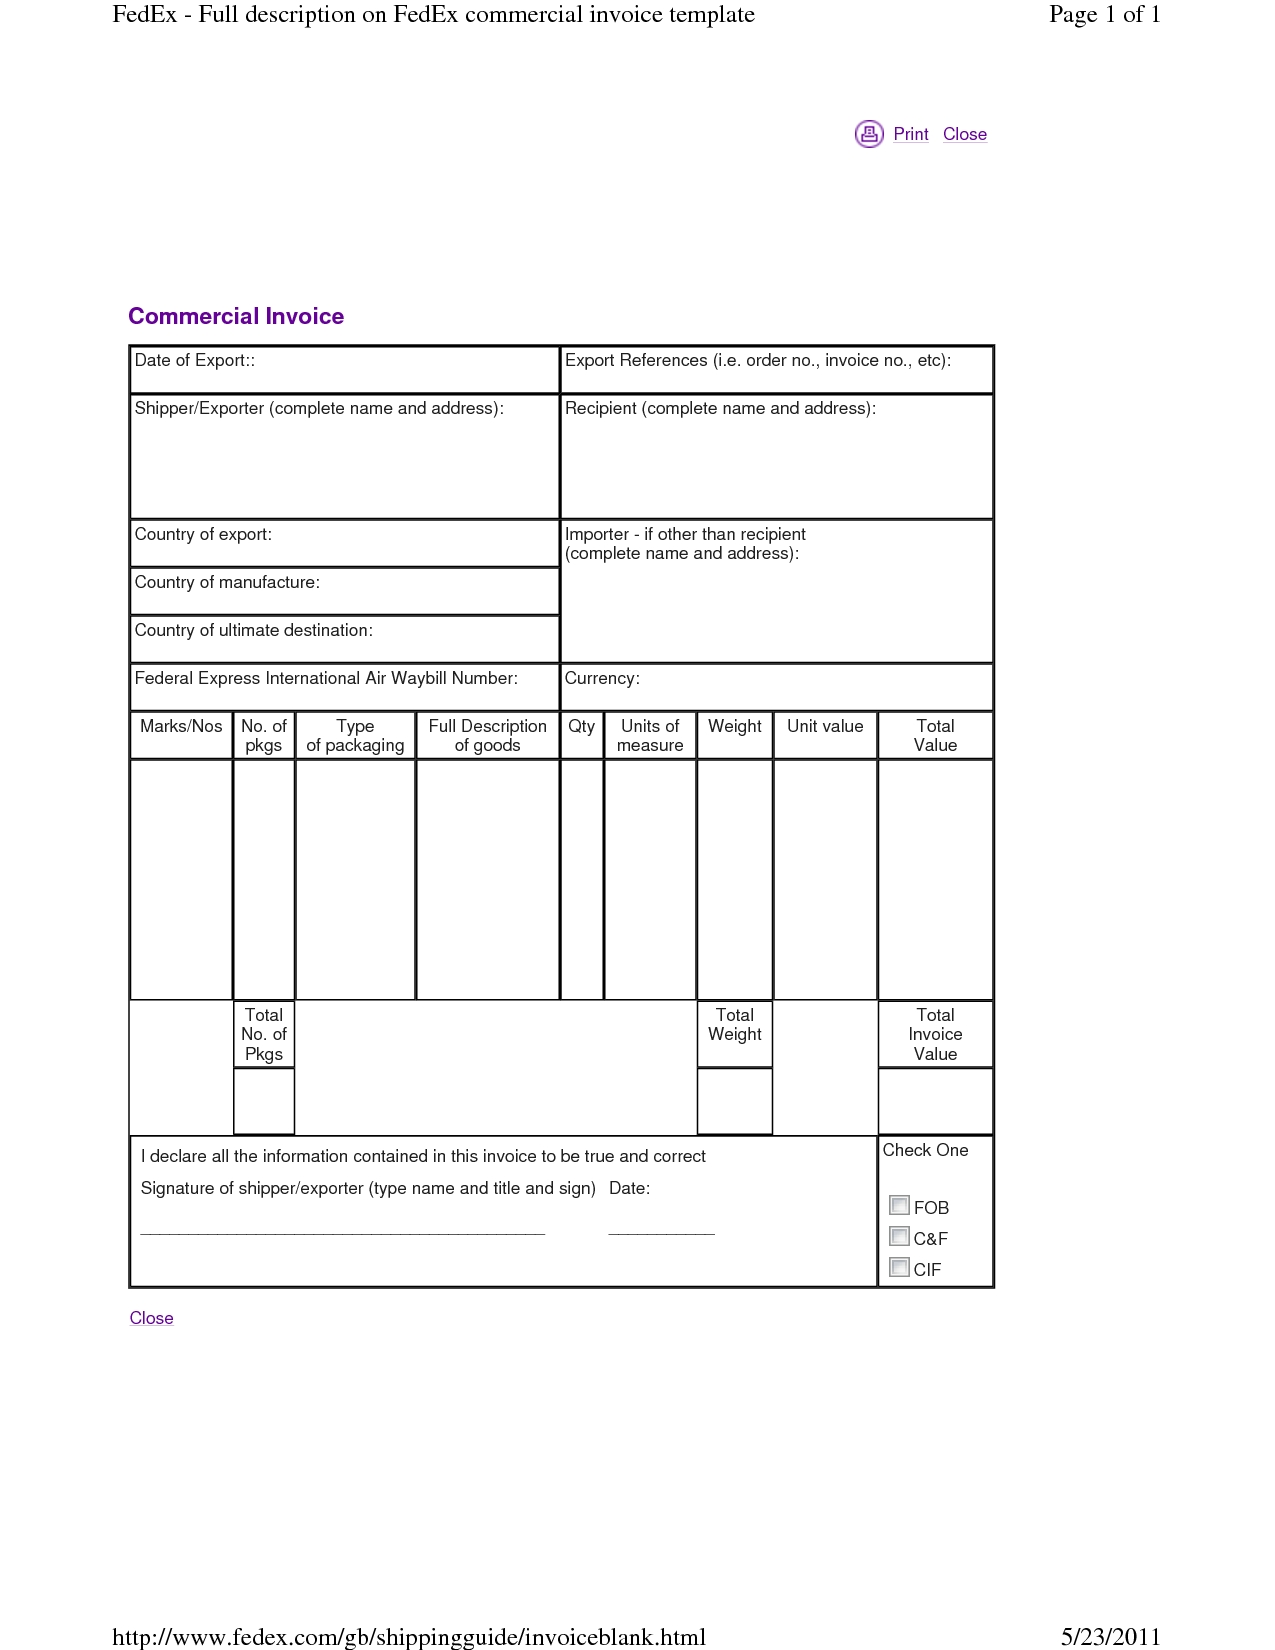 fedex commercial invoice fedex proforma invoice products anabolics 1275 X 1650